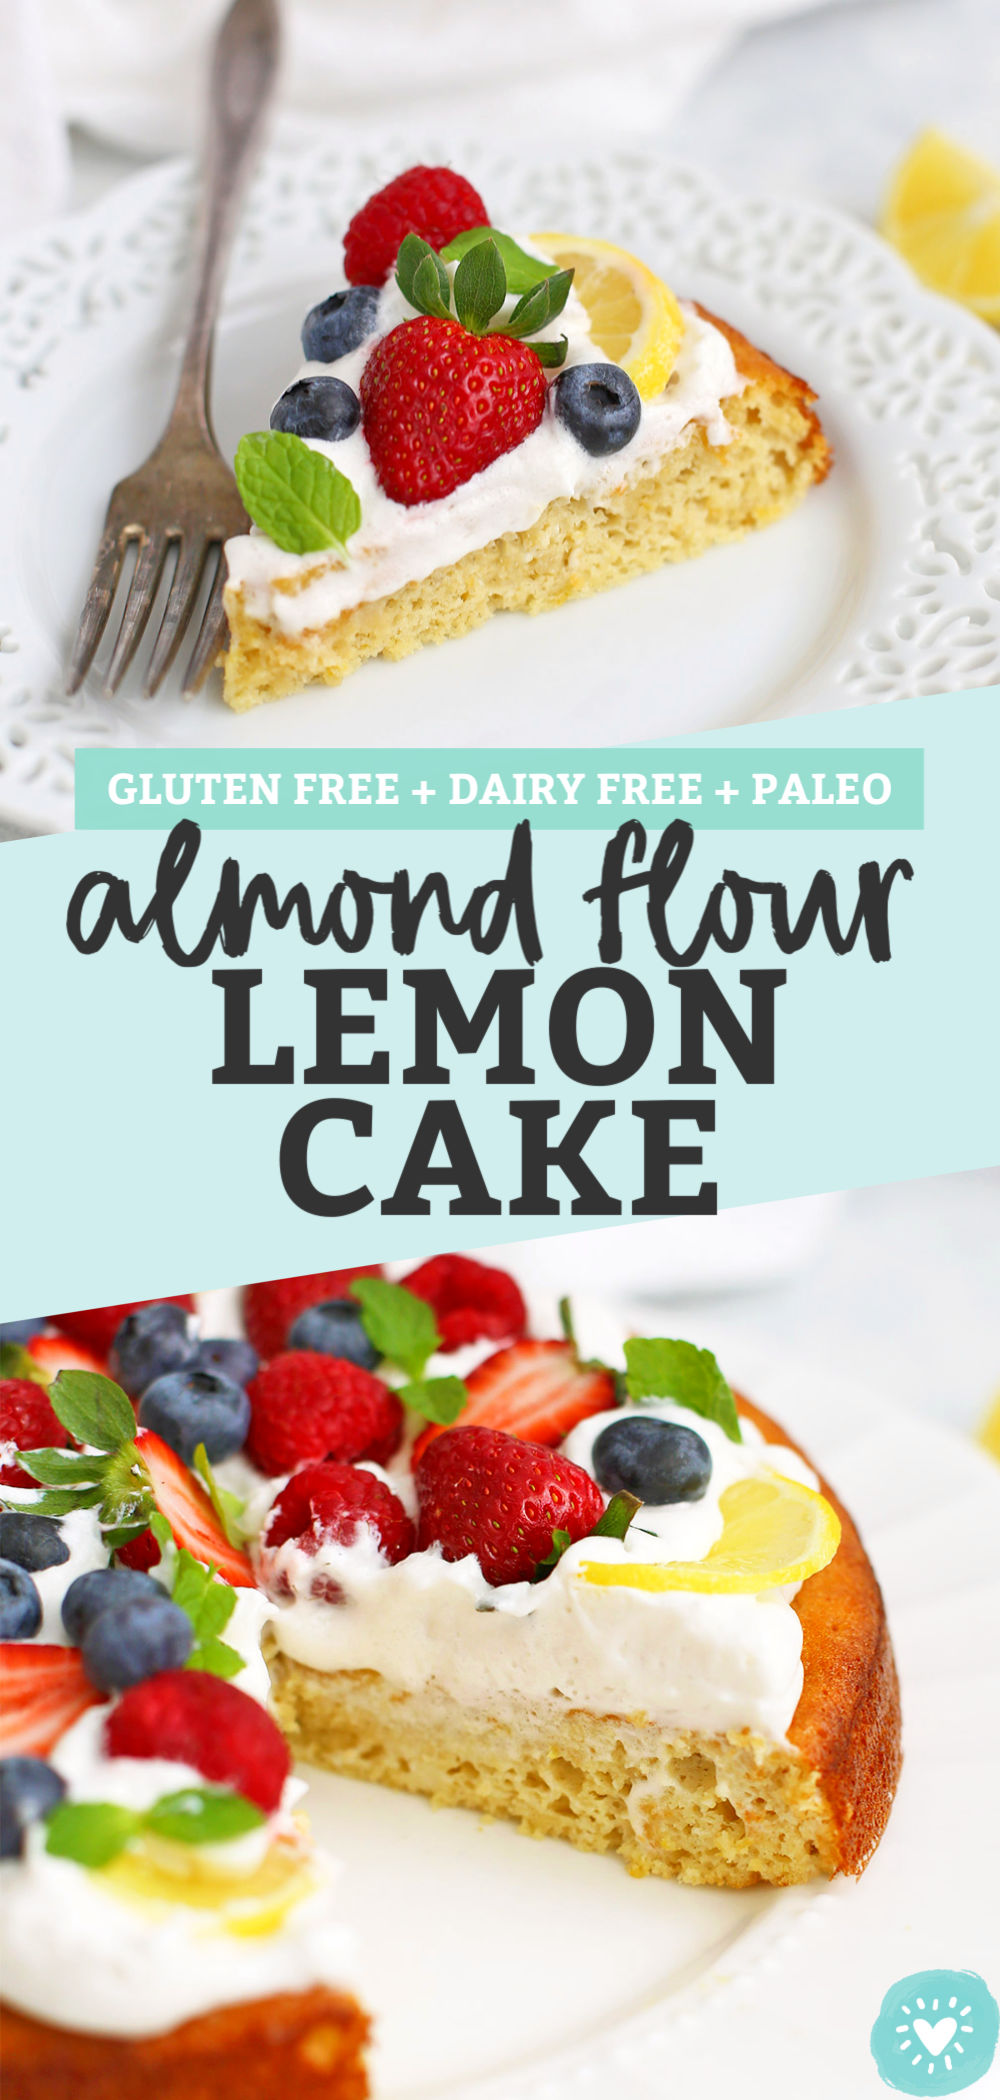 Almond Flour Lemon Cake from One Lovely Life